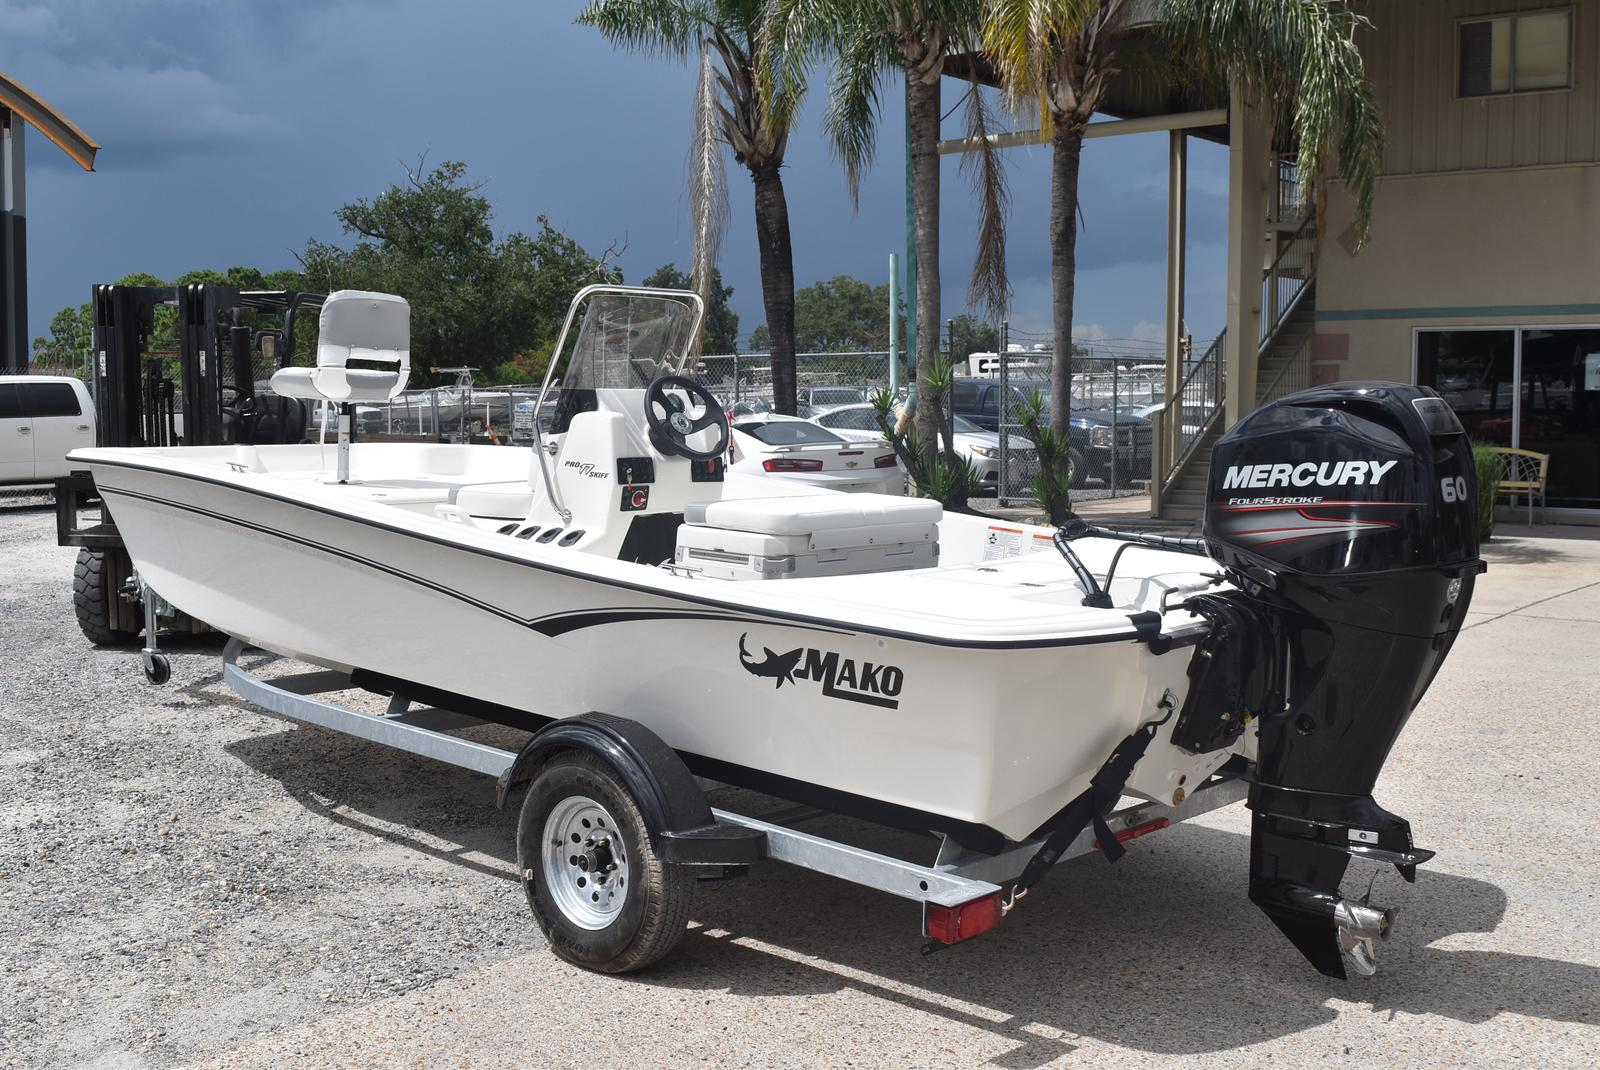 2020 Mako boat for sale, model of the boat is Pro Skiff 17, 75 ELPT & Image # 196 of 702